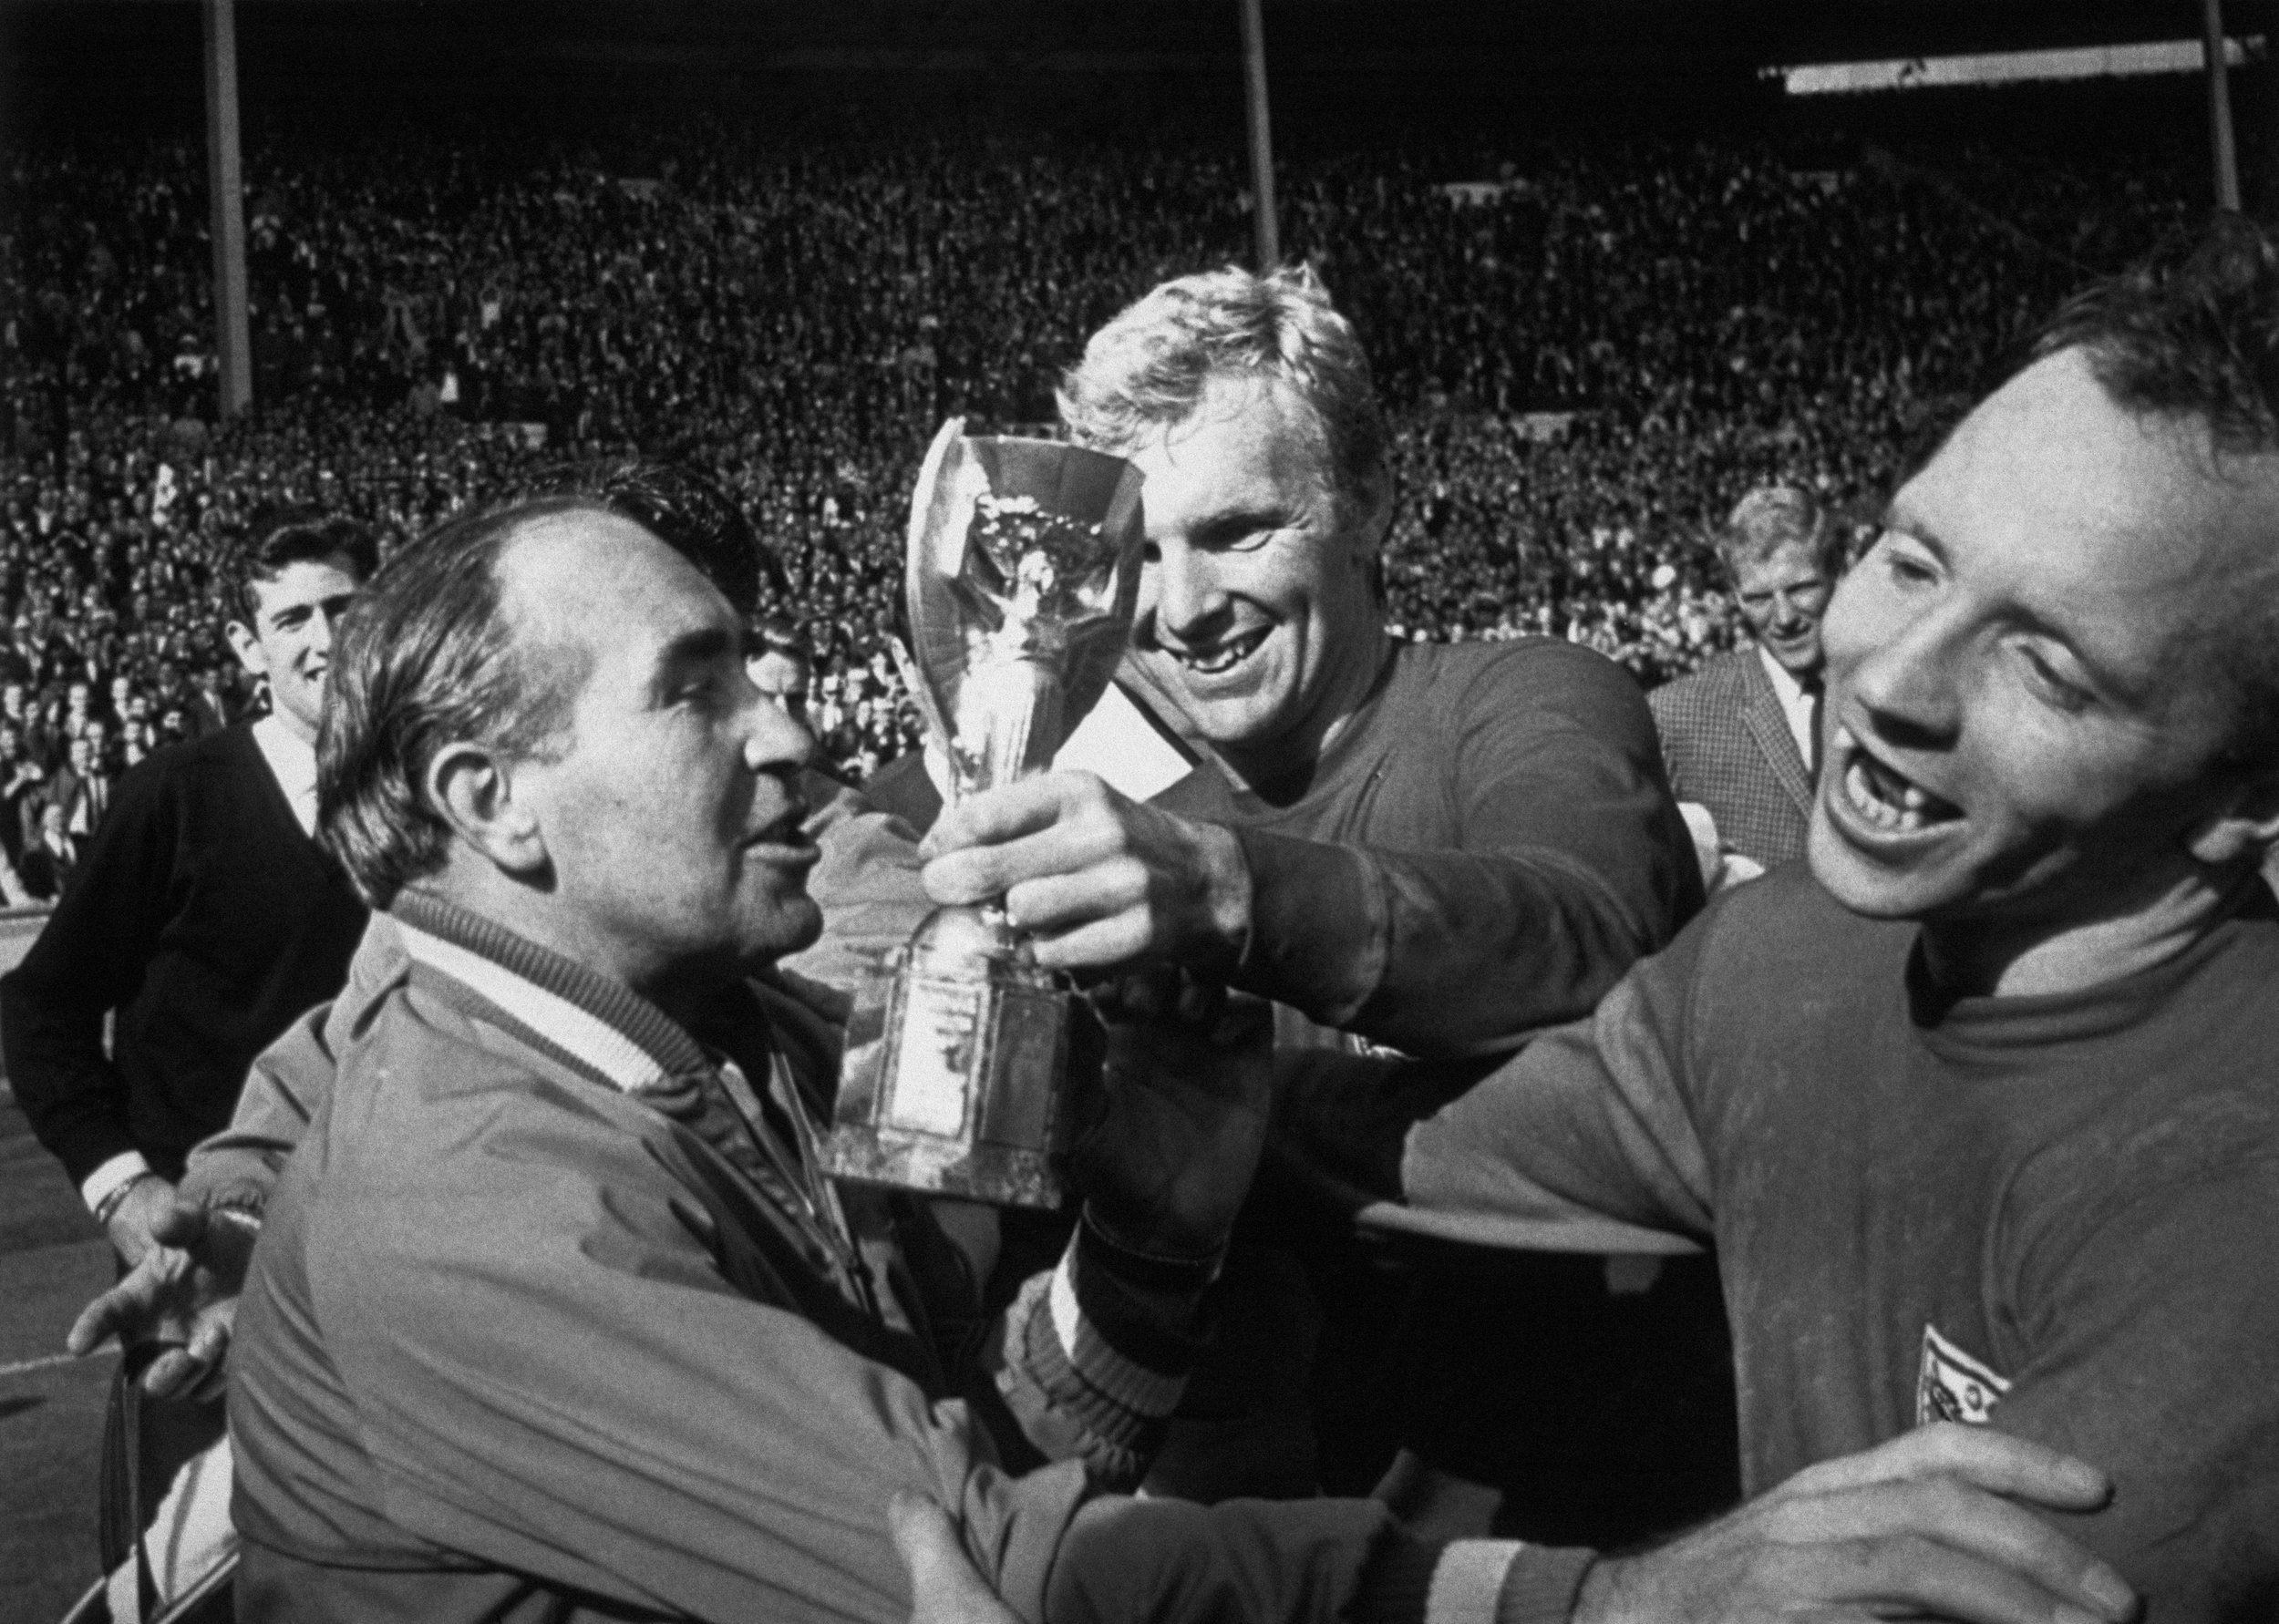 Celebrations following England's win over West Germany in the 1966 World Cup held at Wembley. The England captain, Bobby Moore, holds the Jules Rimmet Cup which the team manager, Alf Ramsay is about to kiss. A delighted Nobby Stiles is also shown.  Photo by Hulton-Deutsch/Hulton-Deutsch Collection/Corbis via Getty Images.